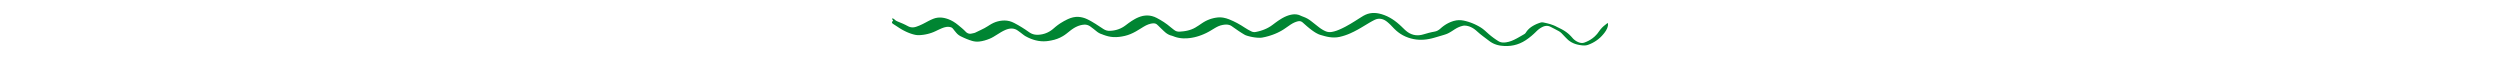 line_green_1.png